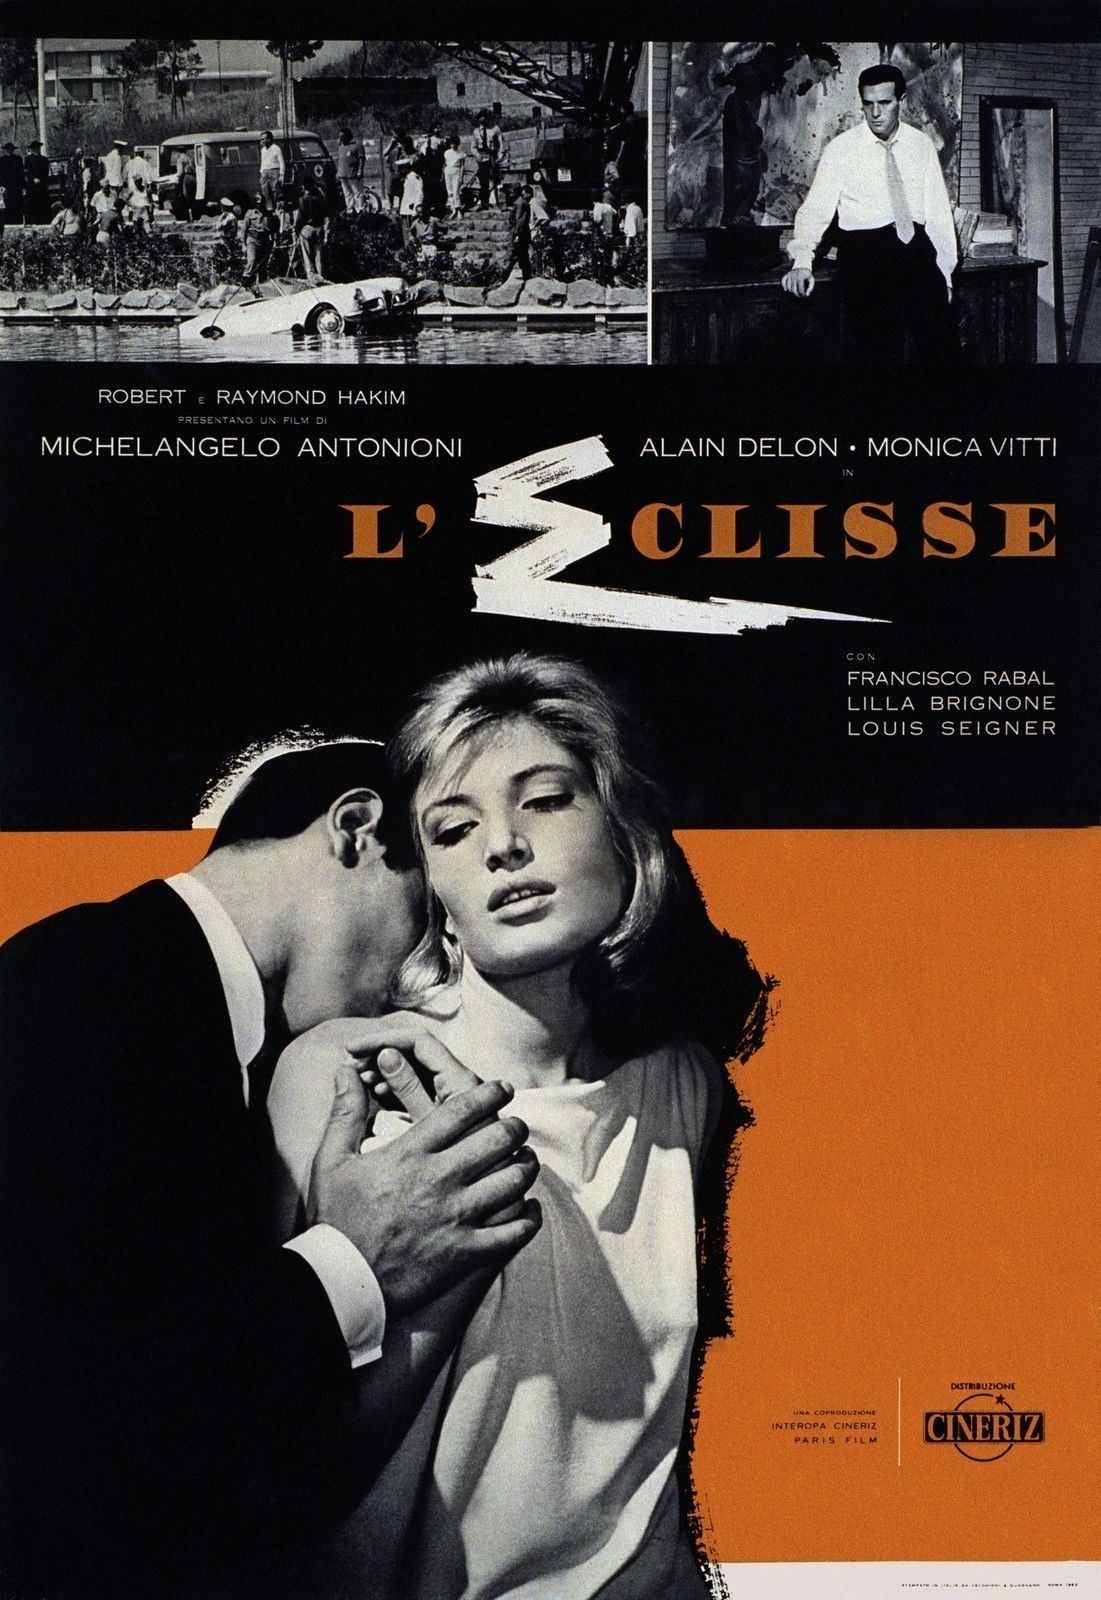 L'eclisse film poster